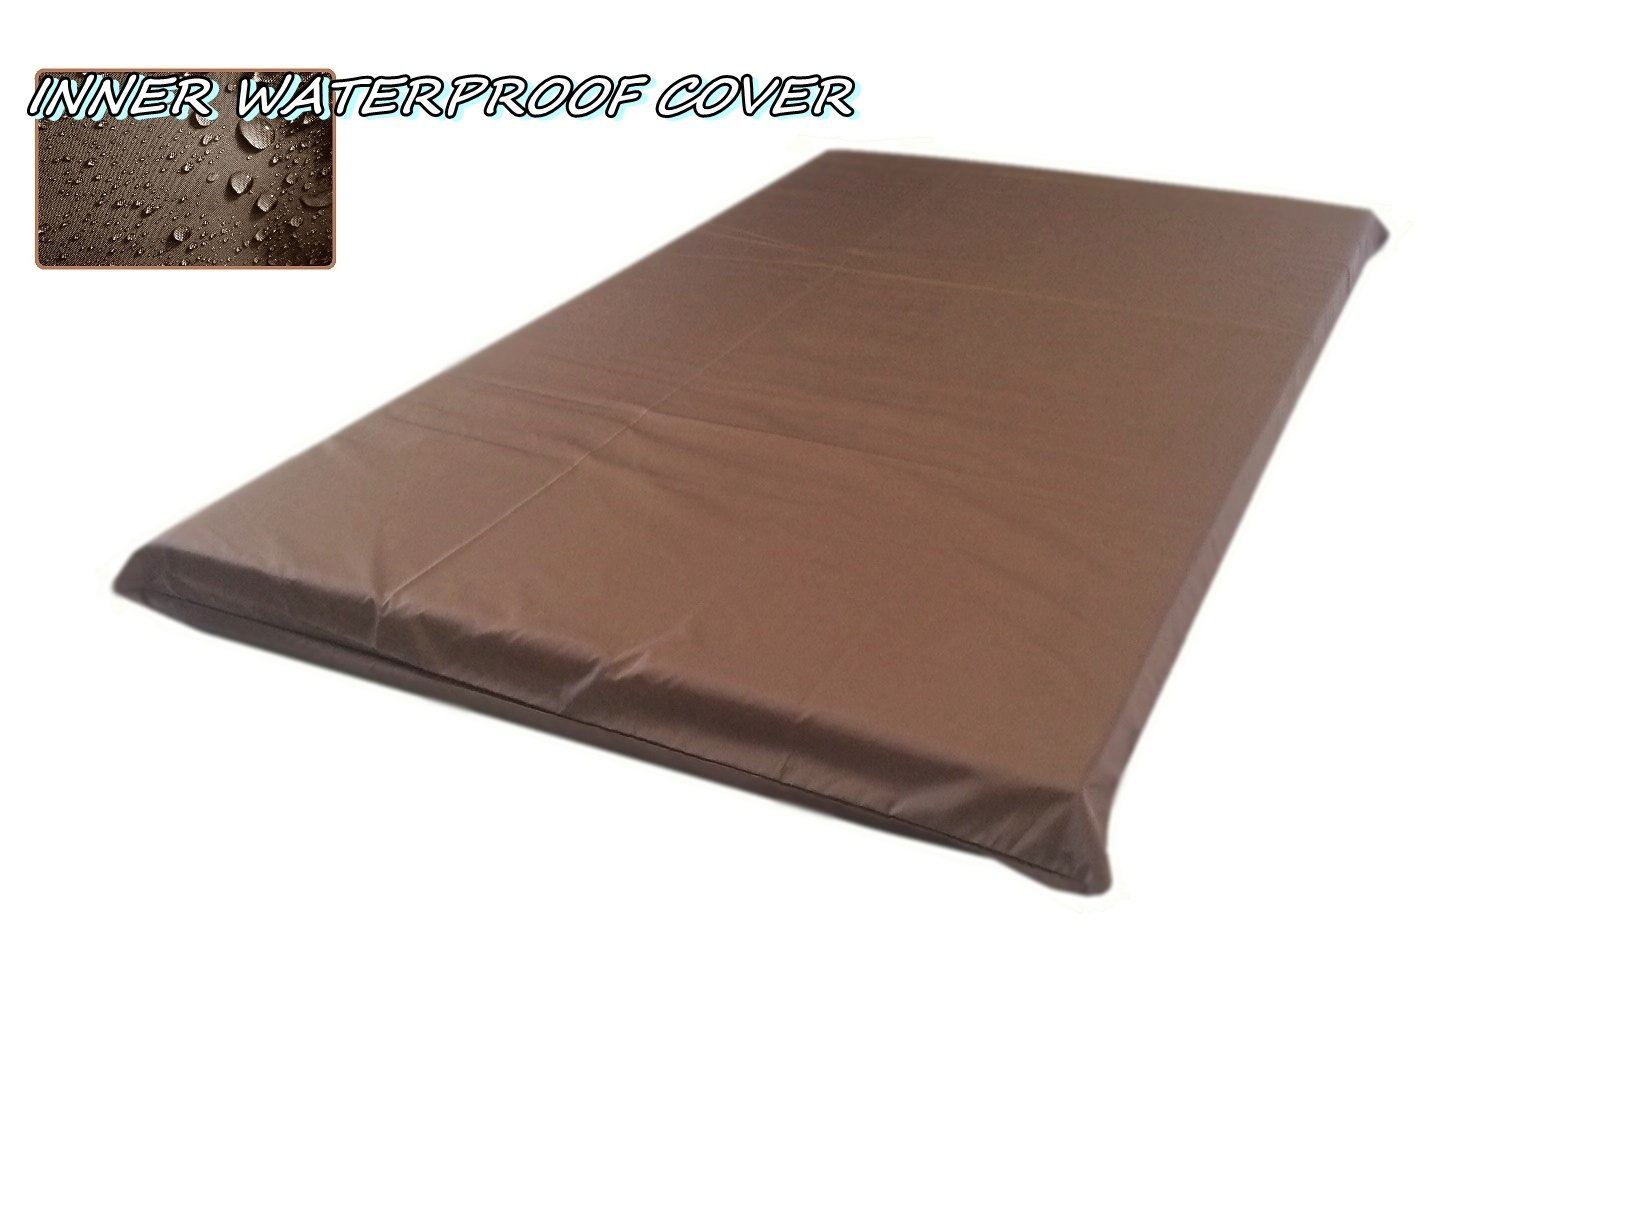 American Comfort Warehouse 2 Quantity of 45''x27''x3'' / 48''x29'' Large size Brown Full Waterproof Dog Bed Liner - Internal Cover Case